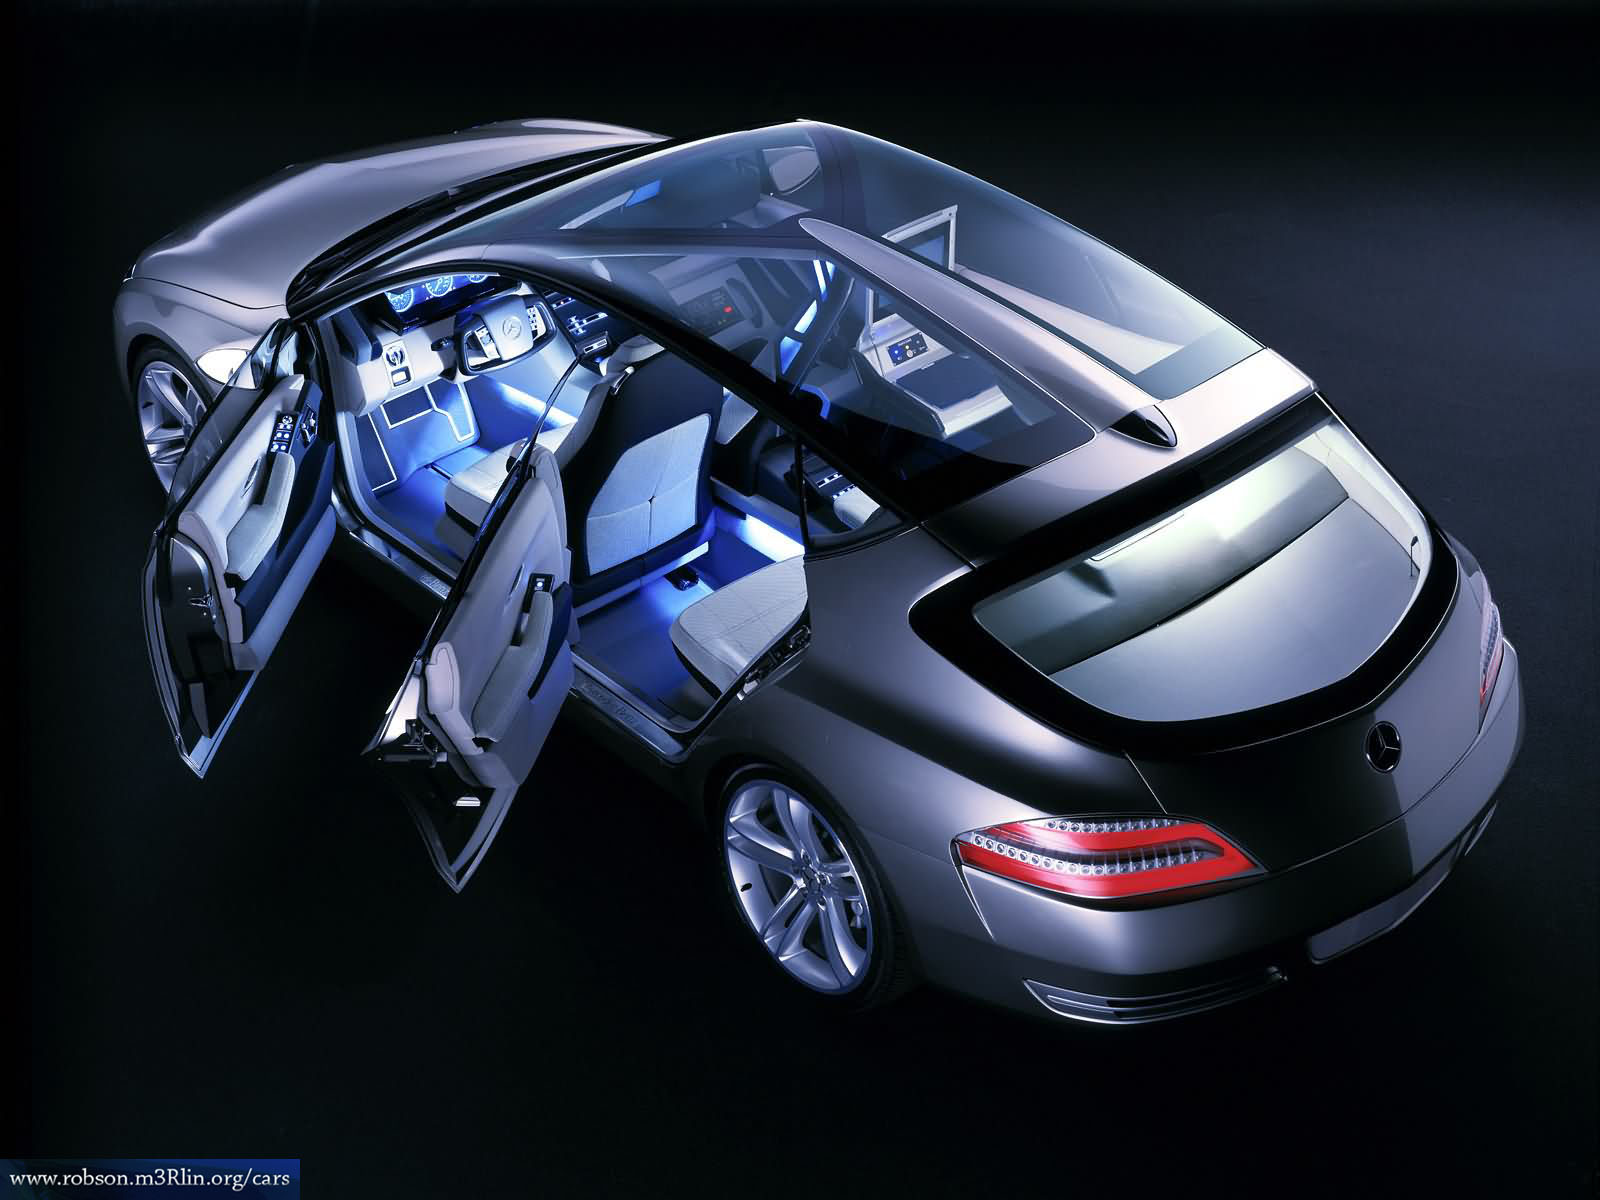 Mercedes - Benz F500 Mind concept